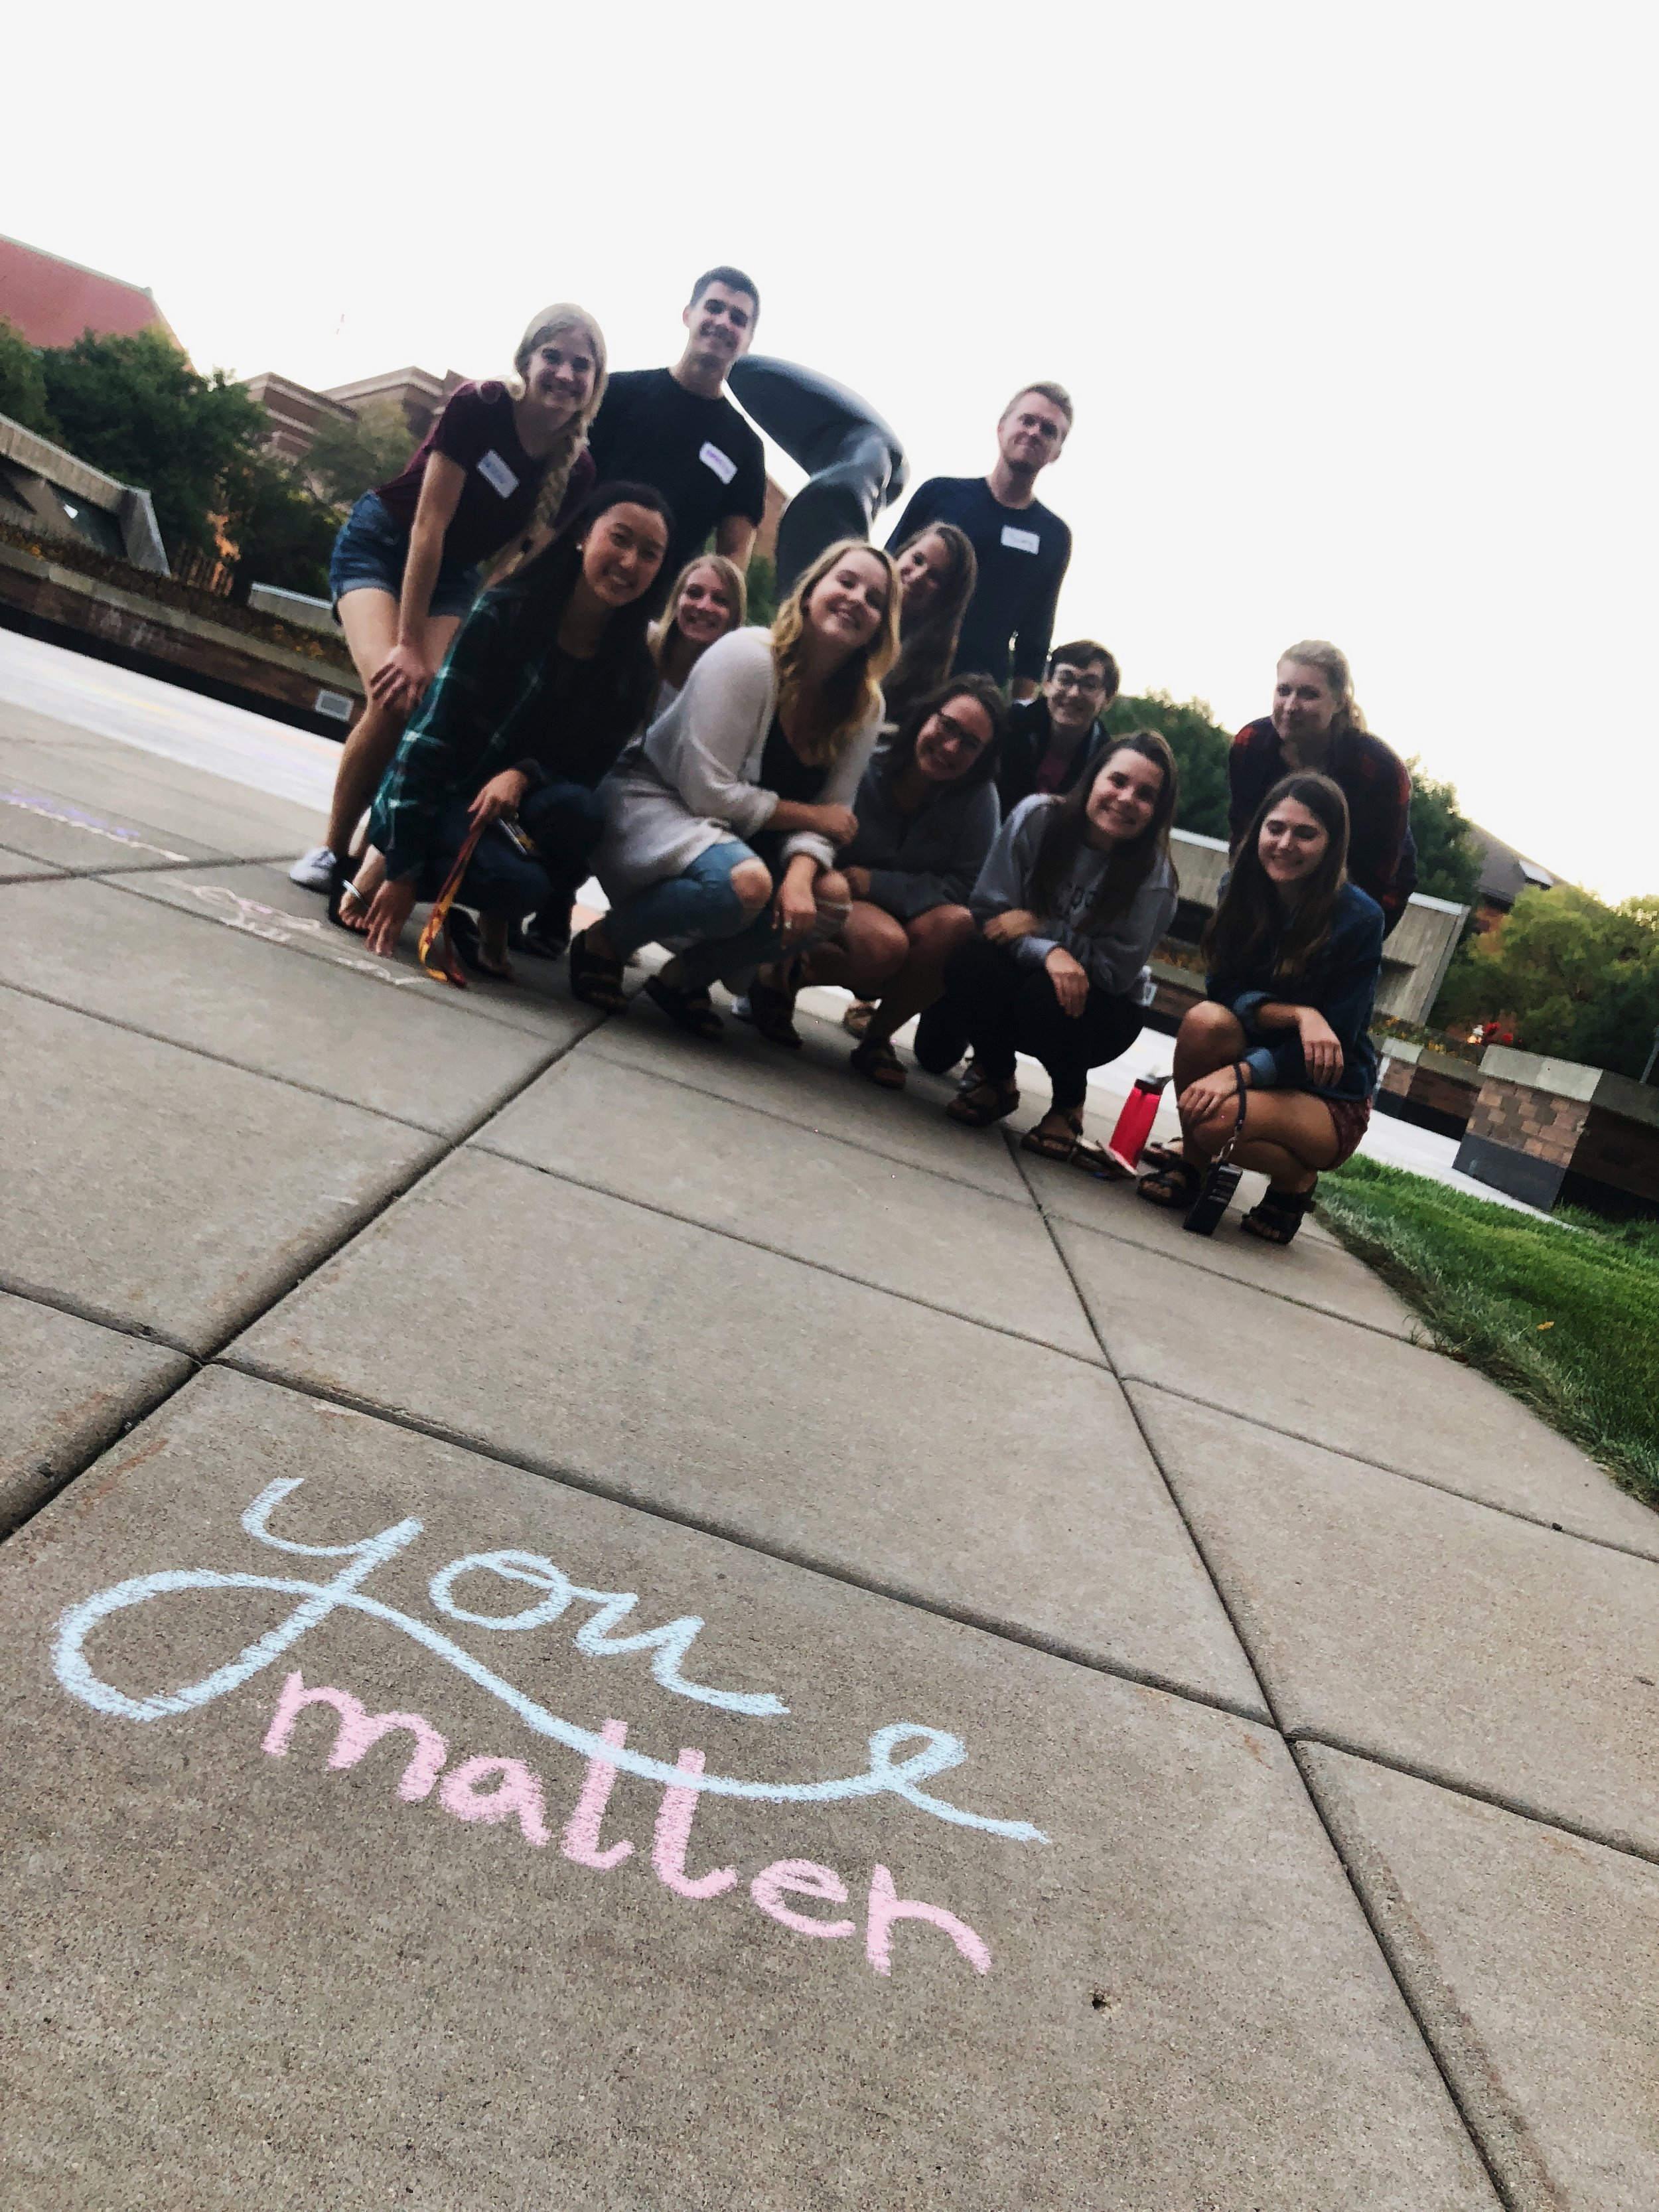 YOUmatter members after chalking up some motivation on campus